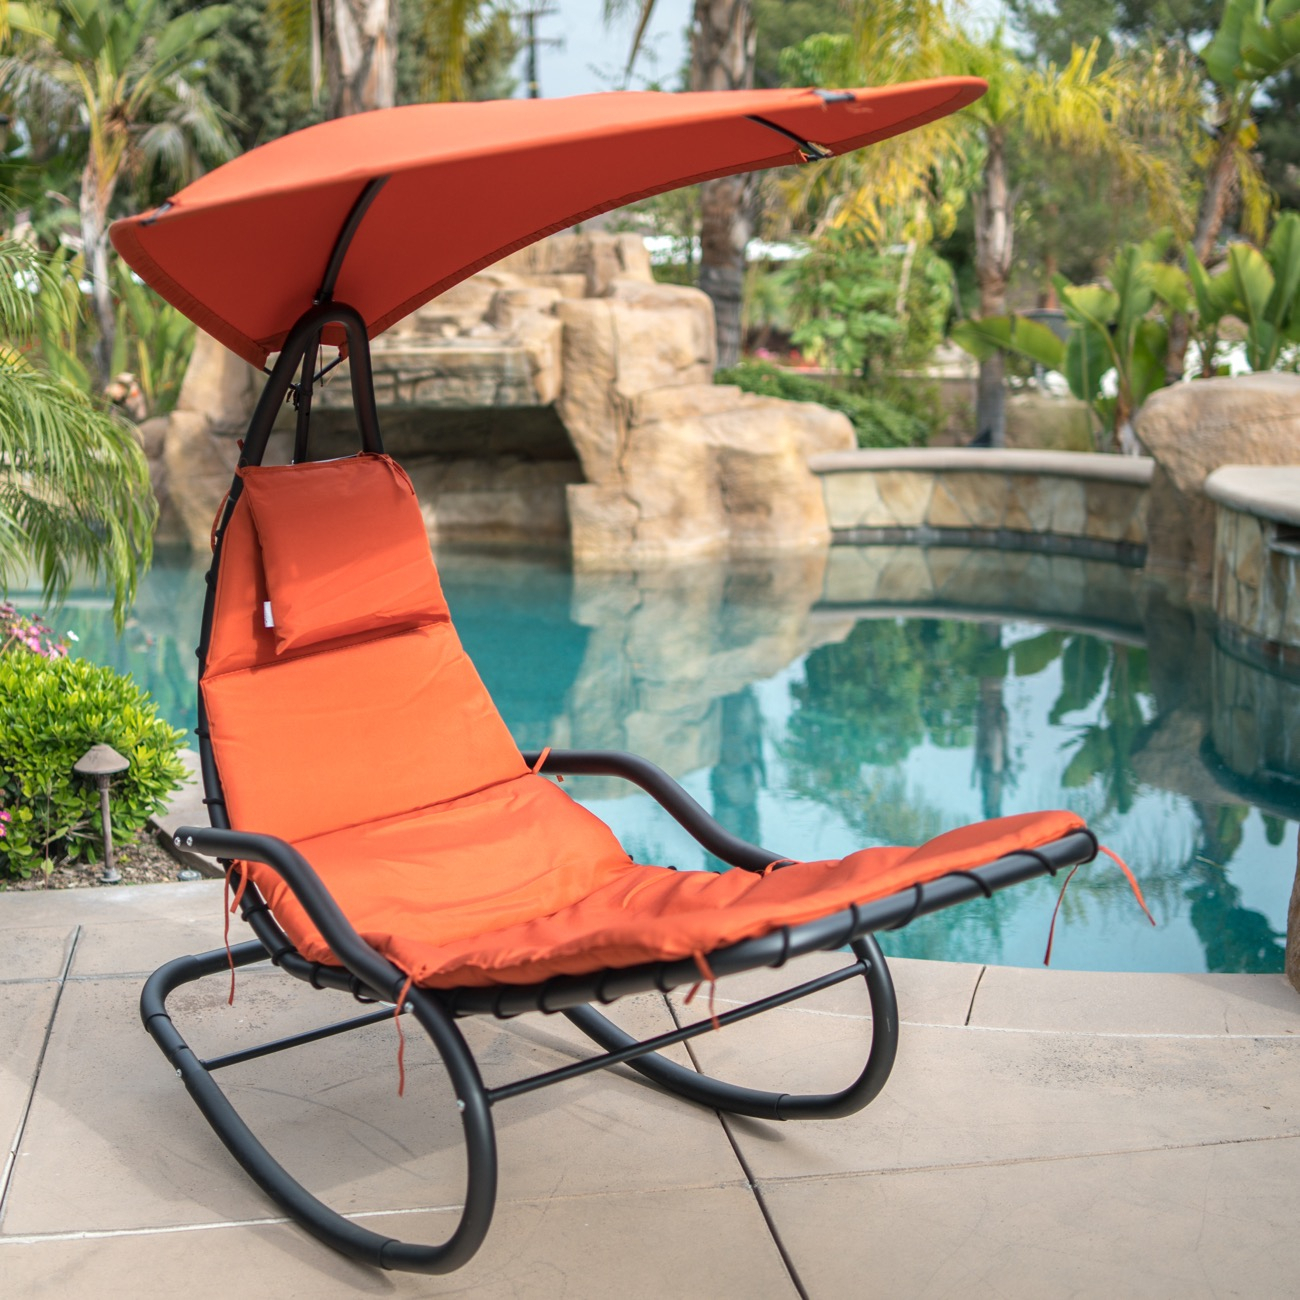 Inspiration about Details About Outdoor Rocking Lounge Chair Rocker Sunshade Umbrella Chaise  W/ Cushion, Orange Pertaining To Orange Rocking Chairs Lounge Chairs (#9 of 20)